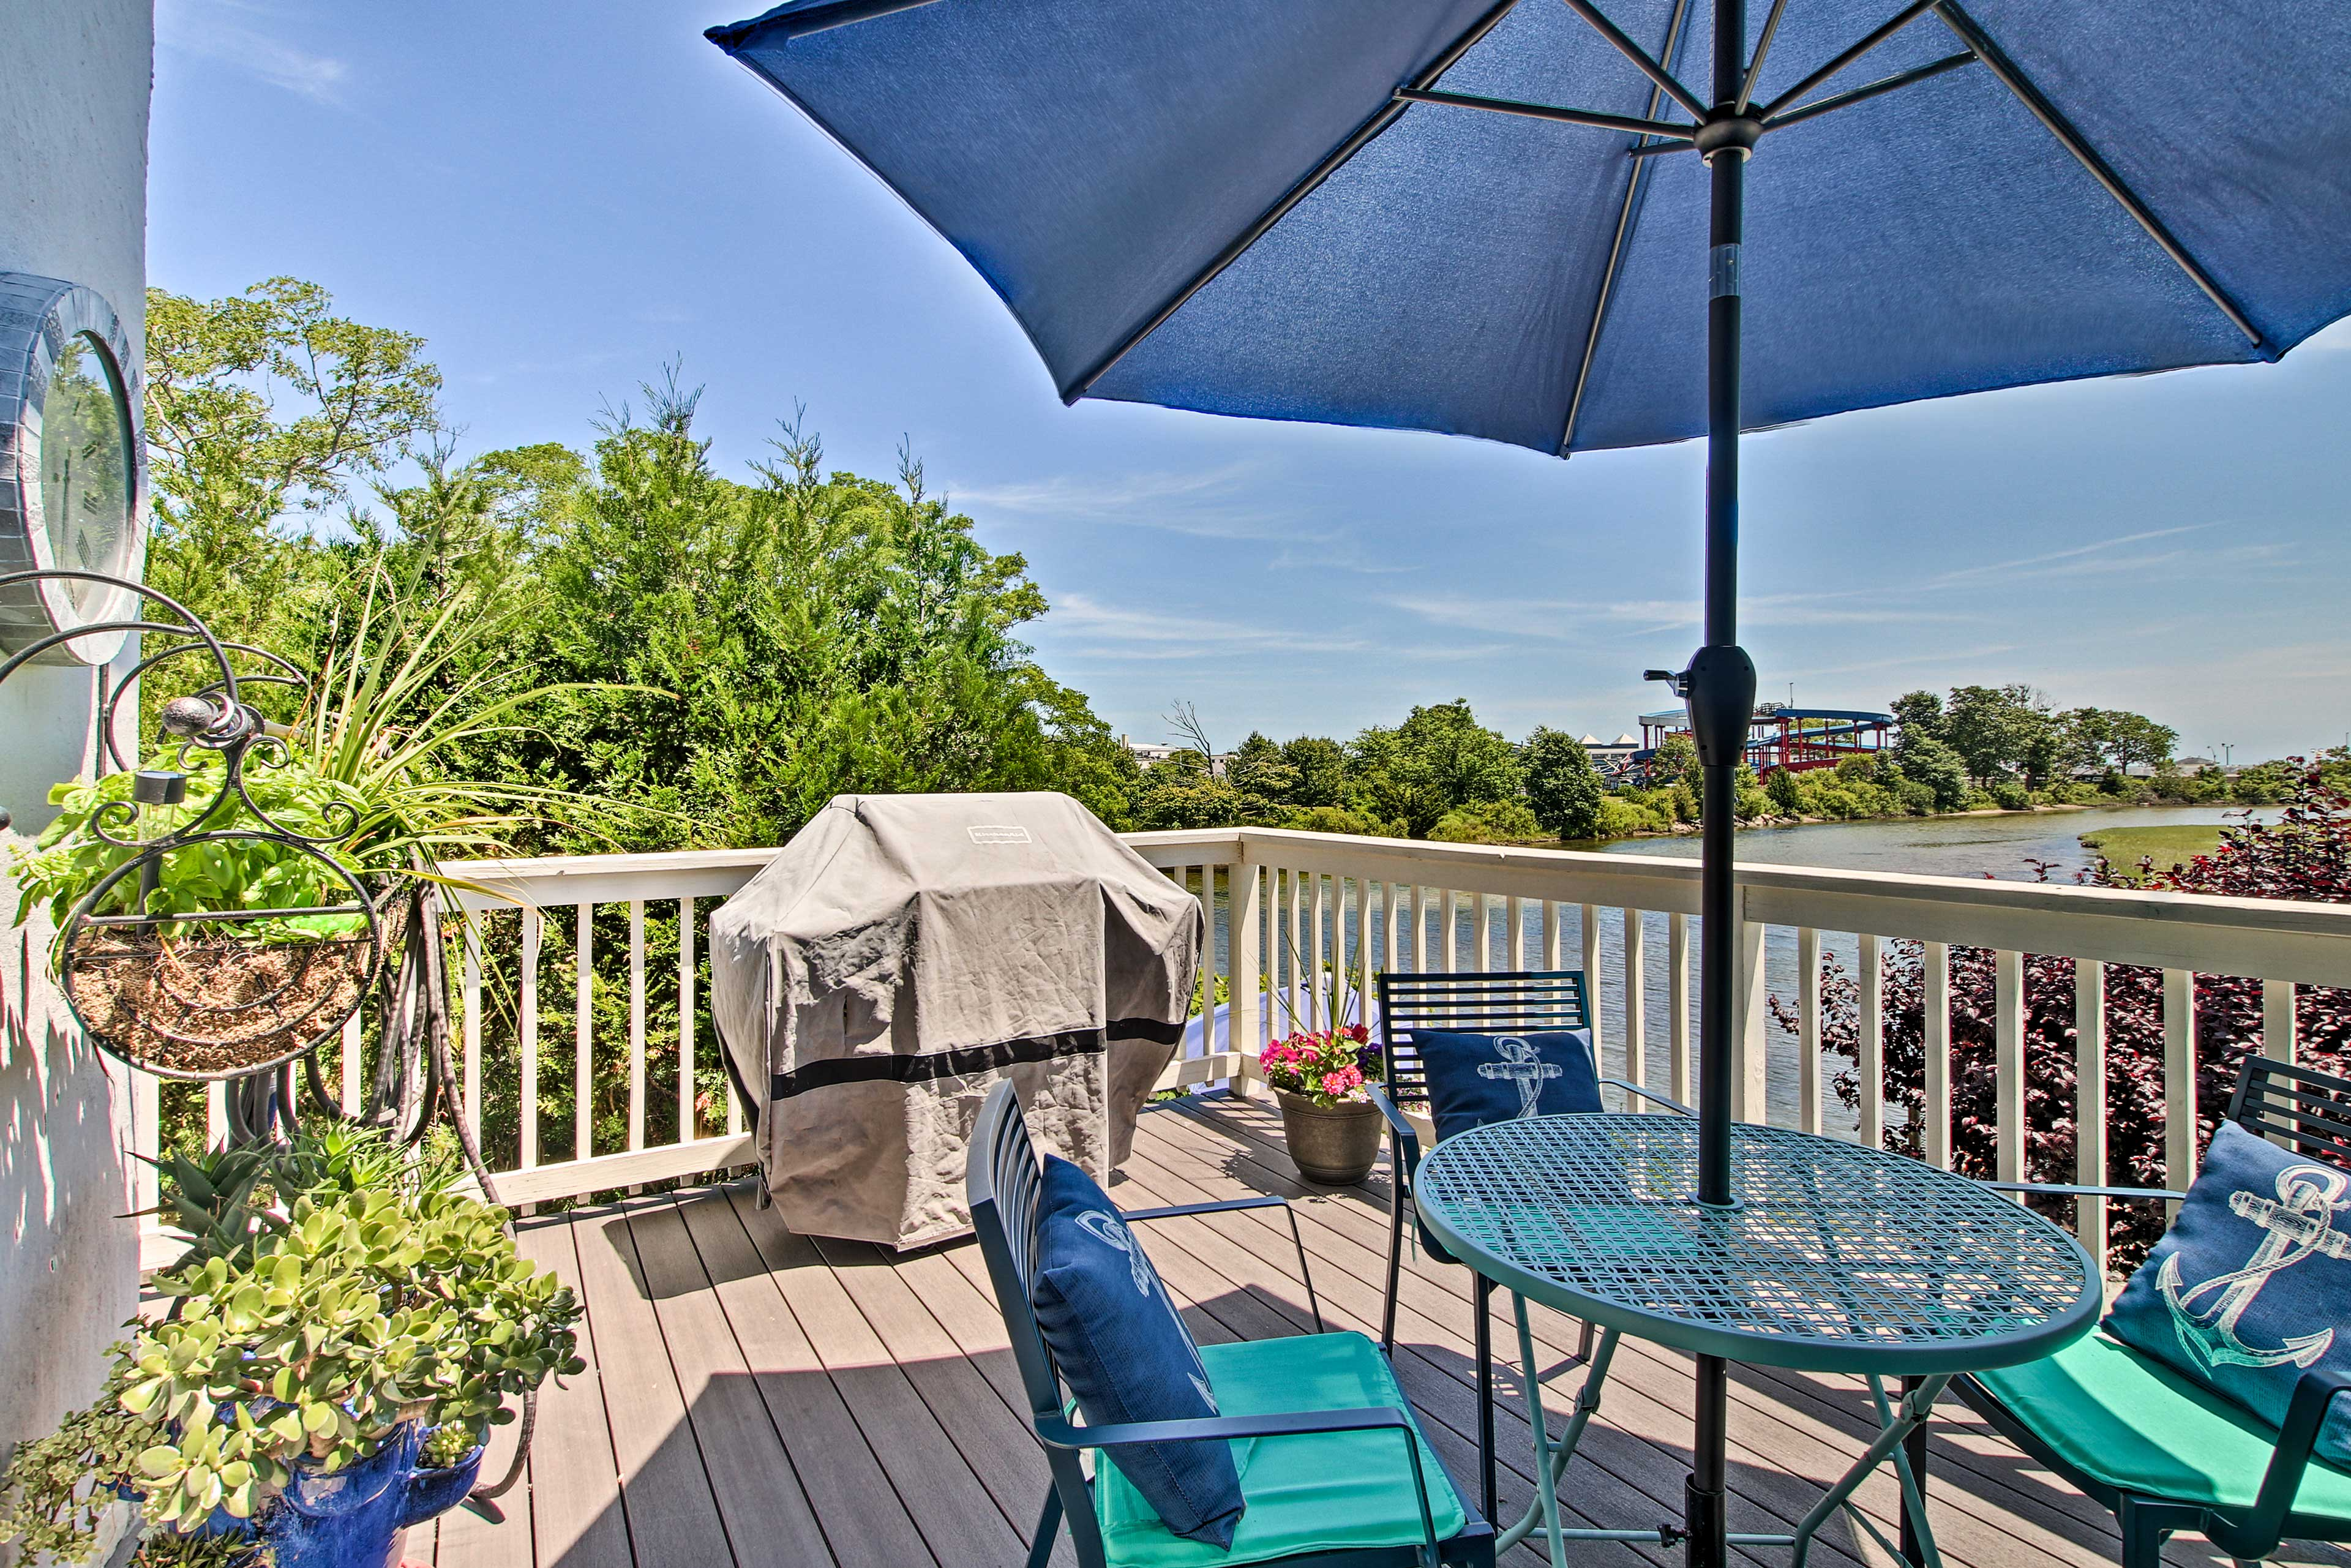 Escape to beautiful Waterford at this vacation rental home!